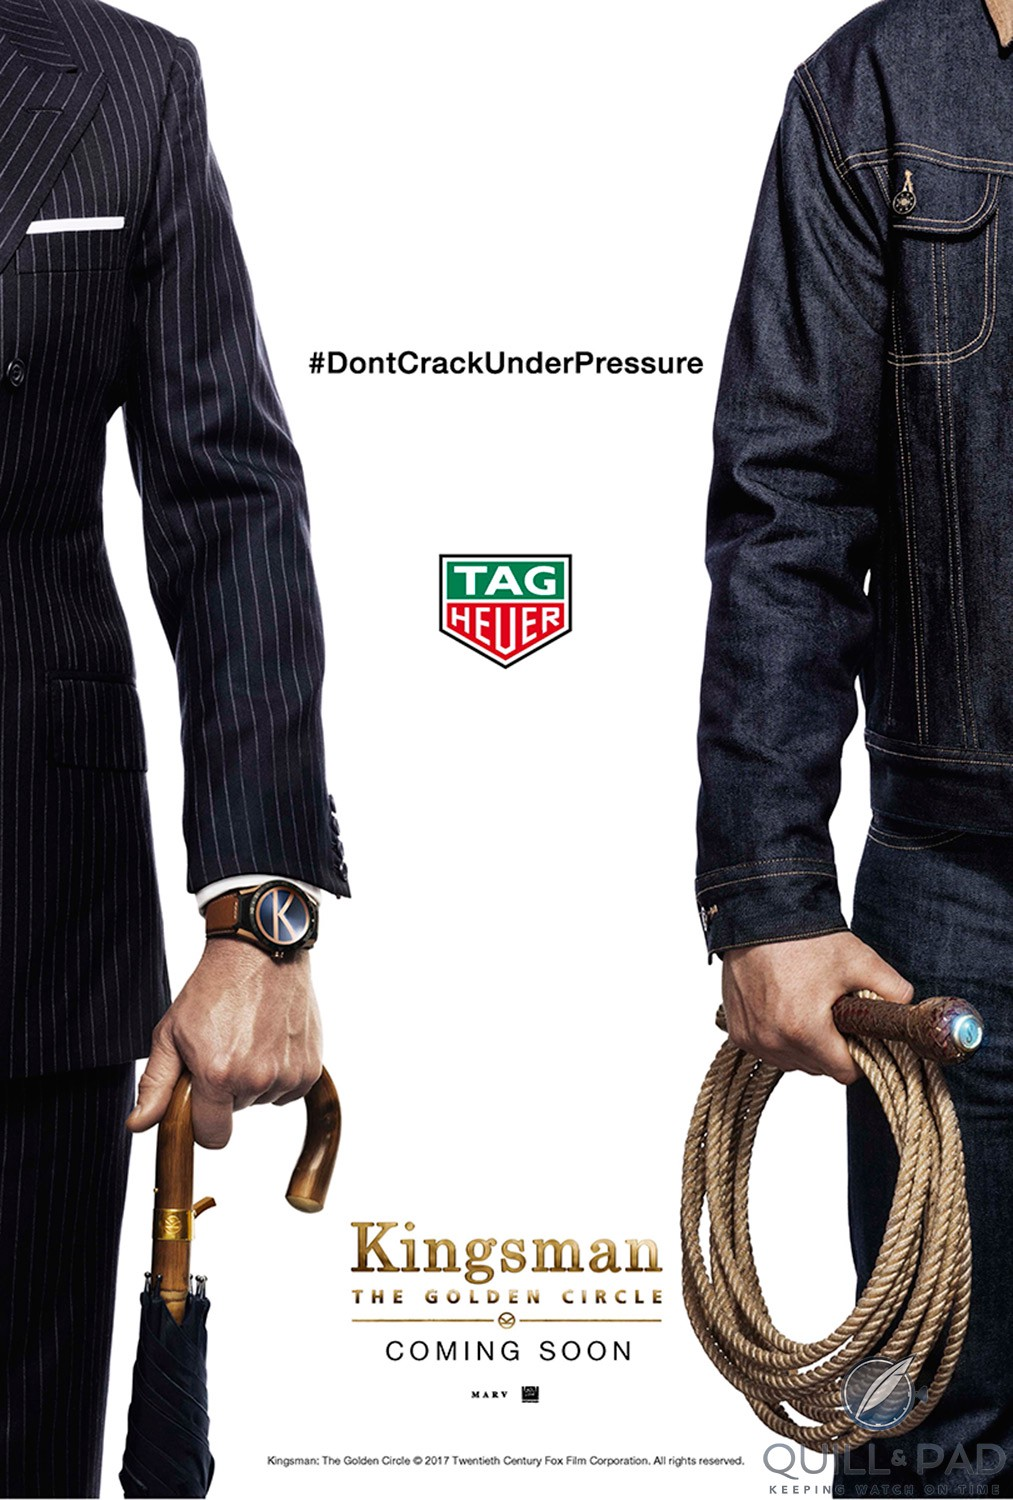 Sequel 'Kingsman: The Golden Circle' features the TAG Heuer Connected Modular 45